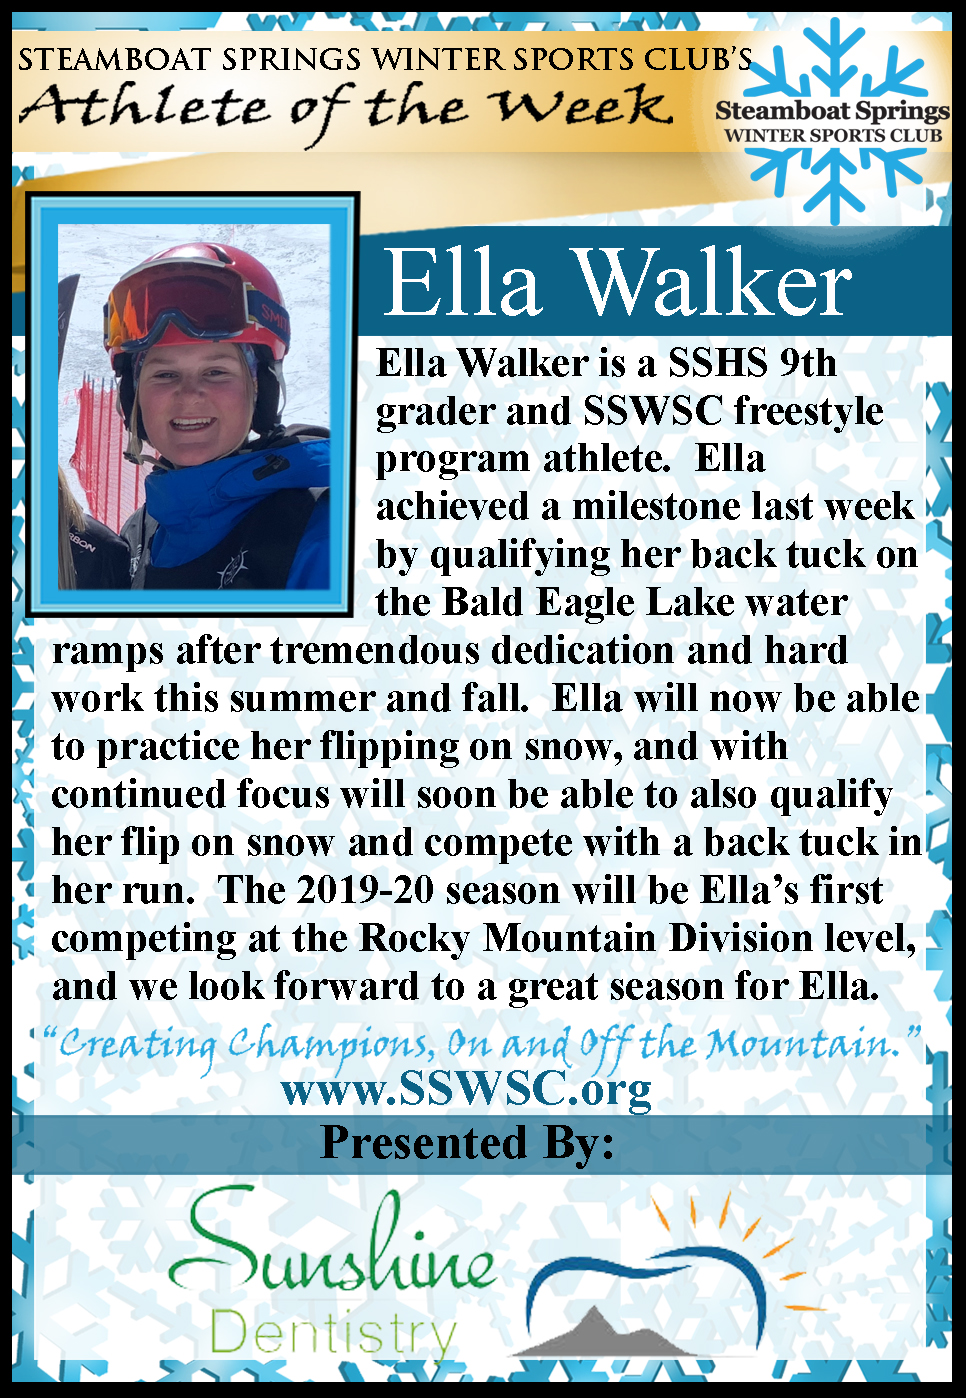 Athlete of the Week, Ella Walker